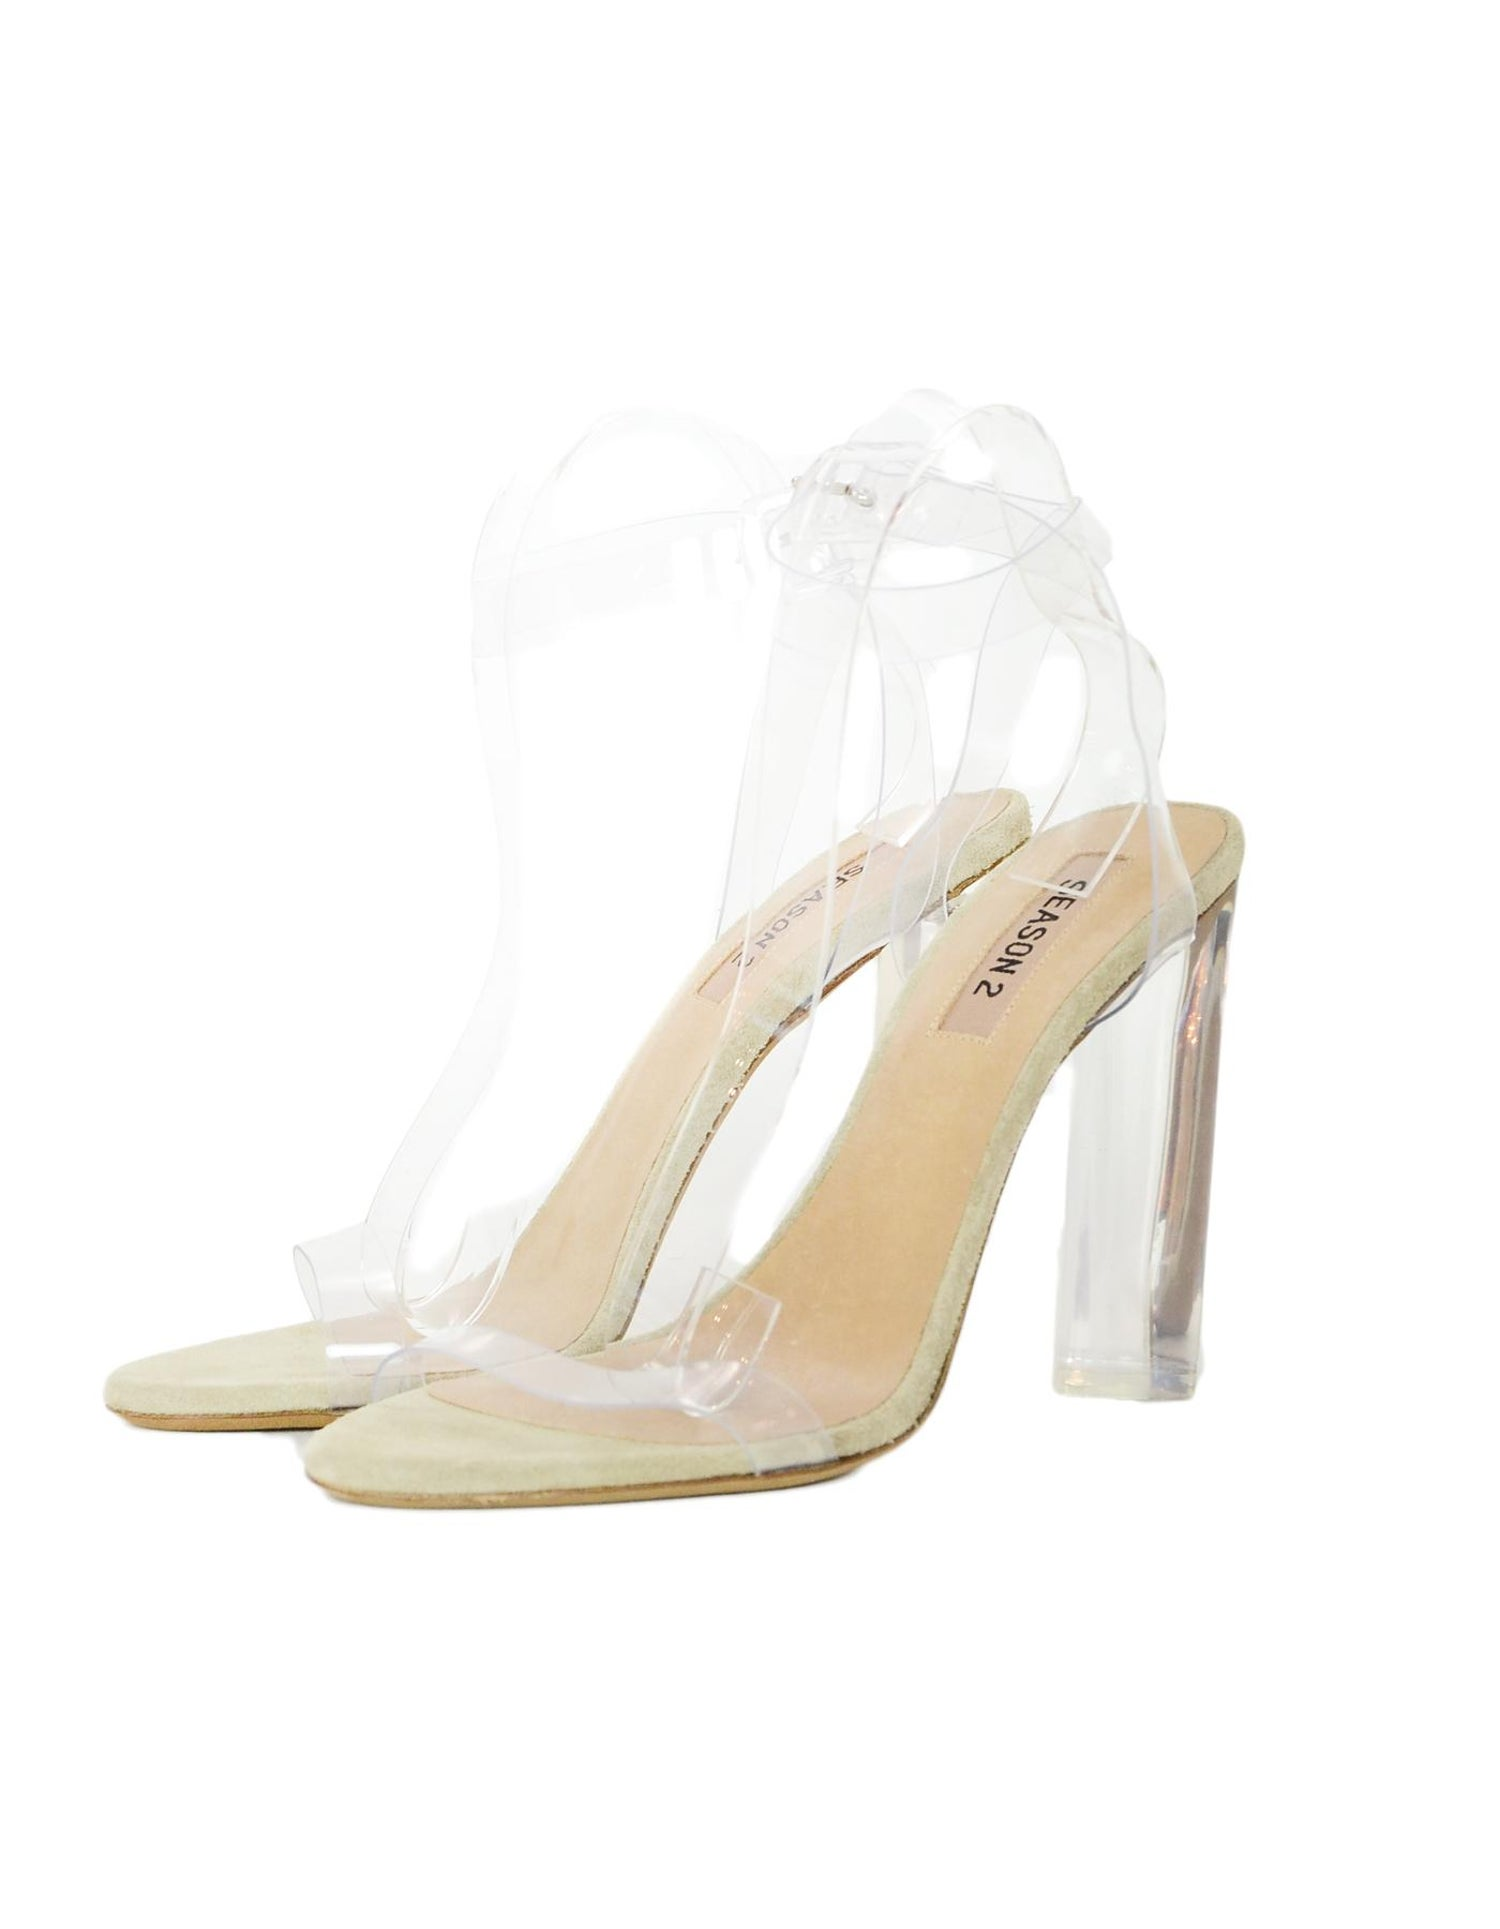 c4d8a189f48 Yeezy Season 2 Tan Suede Clear PVC Sandals Sz 39.5 For Sale at 1stdibs